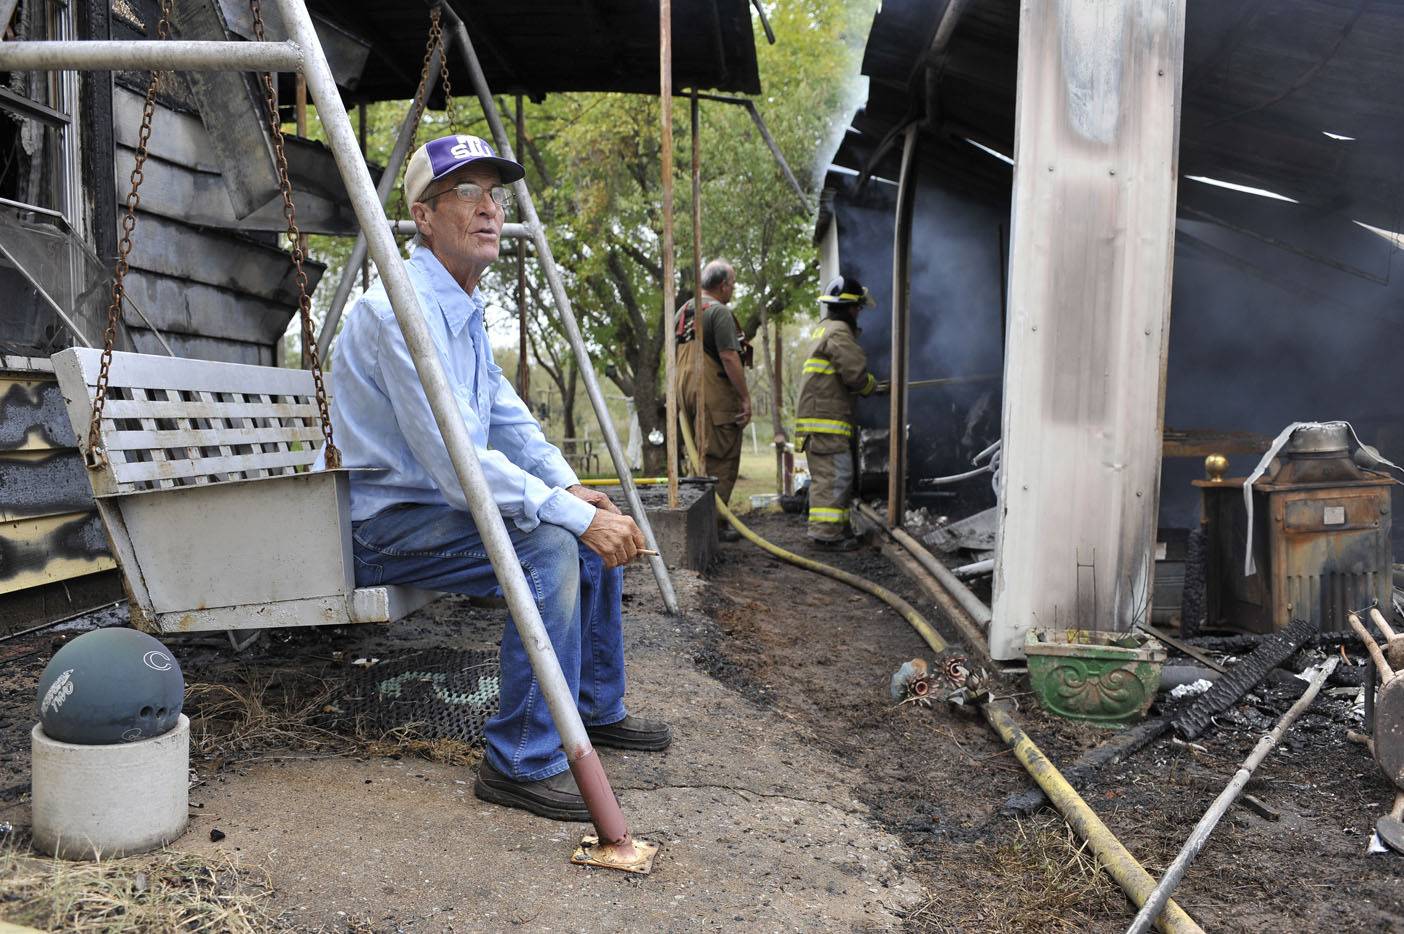 Property owner William Caddell of Petrolia looks on as PVFD Fire fighter Marilyn Loucks uses a pike pole to locate hotspots in Caddell's garage Thursday after an early morning structure fire in Petrolia.